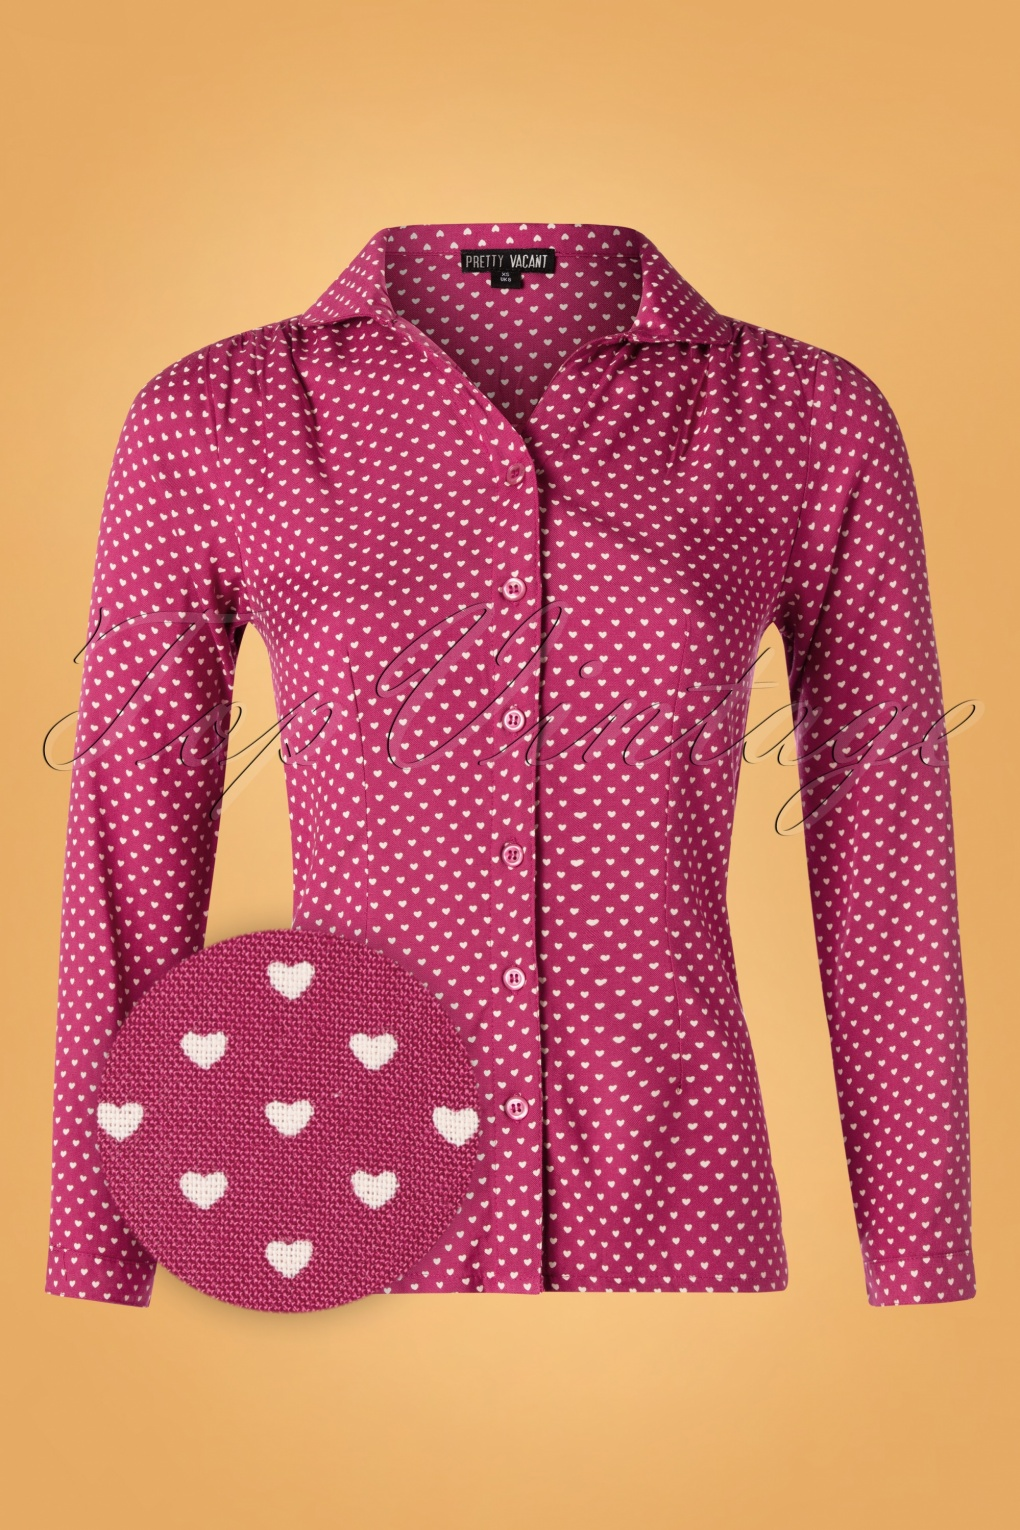 1960s Style Dresses, Clothing, Shoes UK 60s Gaby Hearts Blouse in Raspberry £46.54 AT vintagedancer.com